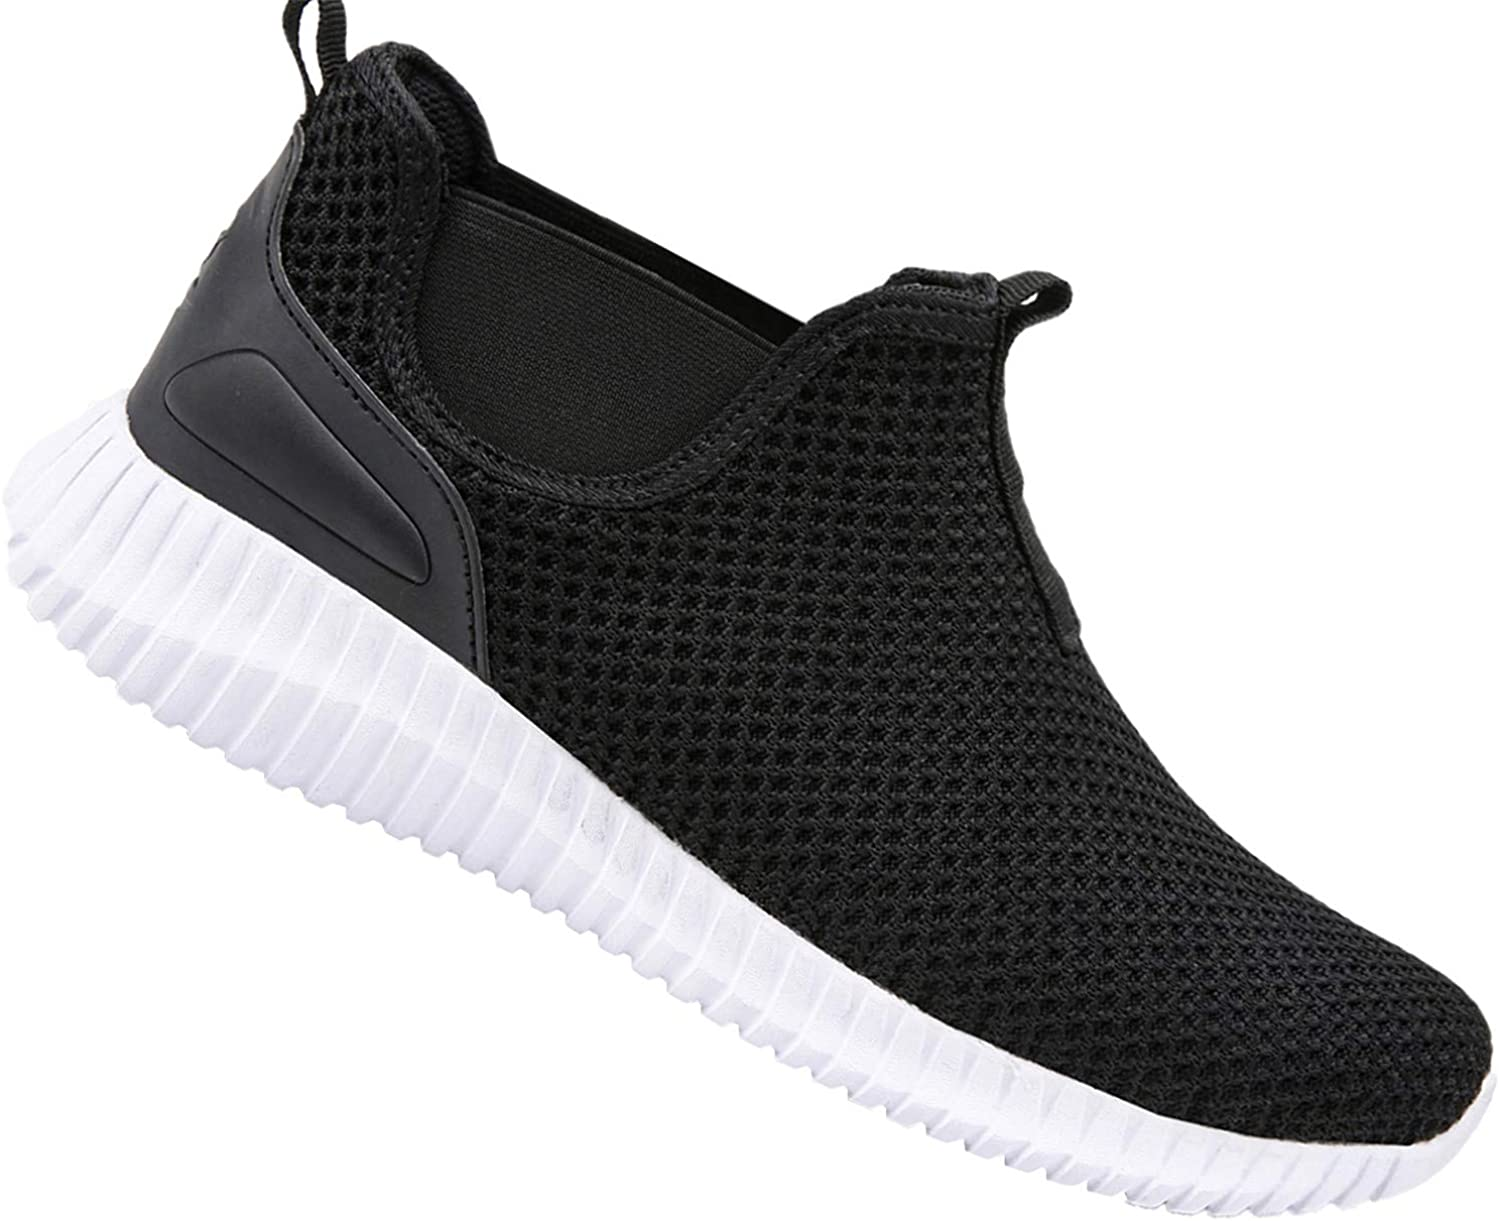 JINKUNL Mens Running shoes Casual Walking Sneakers Wide Width Workout Athletic shoes for Men Black White 12 D(M) US